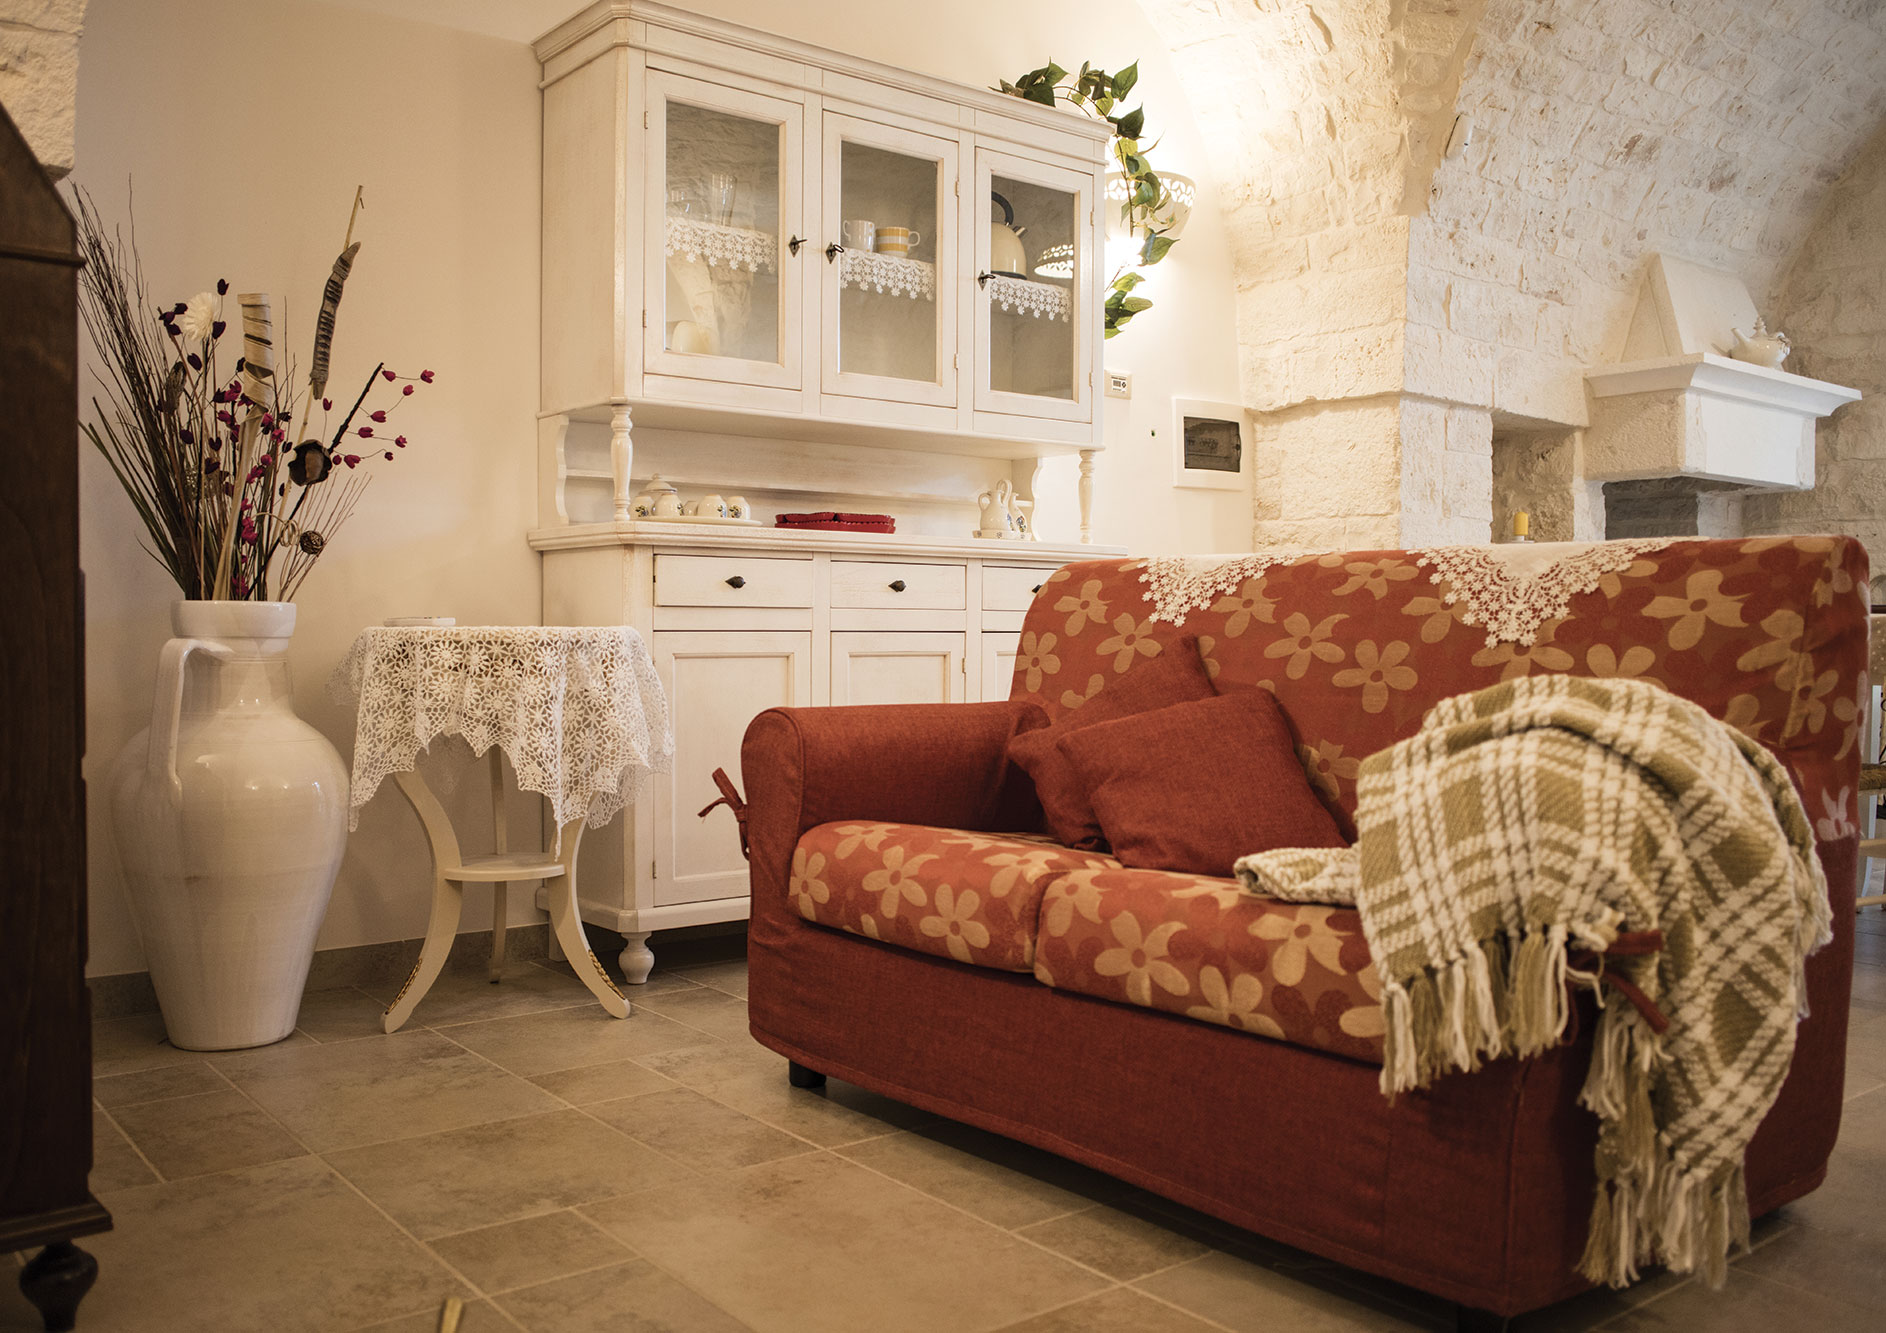 Trullo Puglia Holiday house Martina Franca